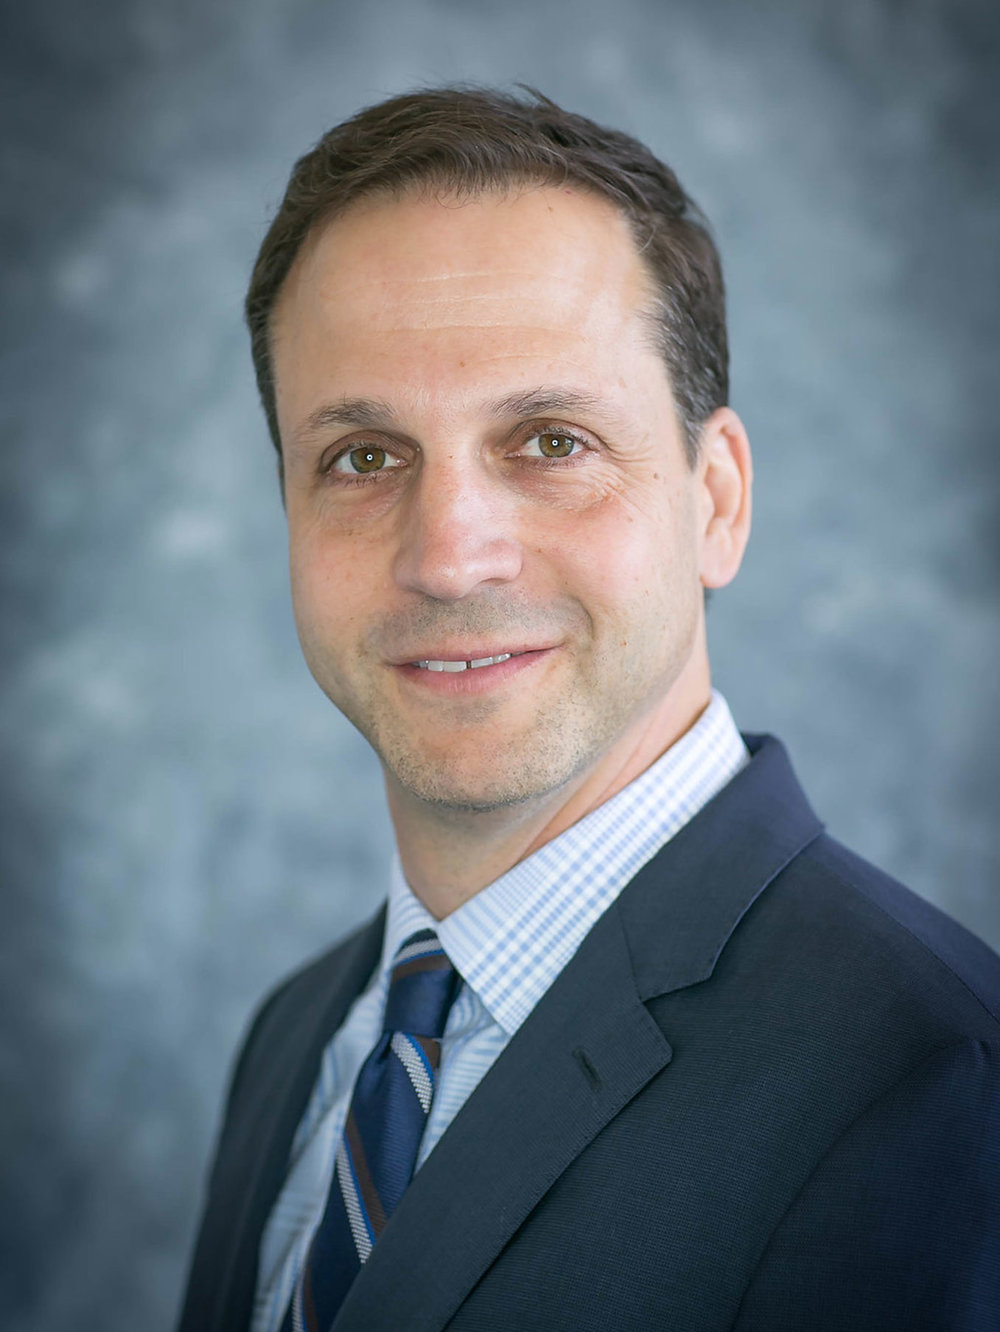 Robert Herman is a Day Hagan Investment Committee Consultant for Day Hagan Asset Management in Sarasota, FL.